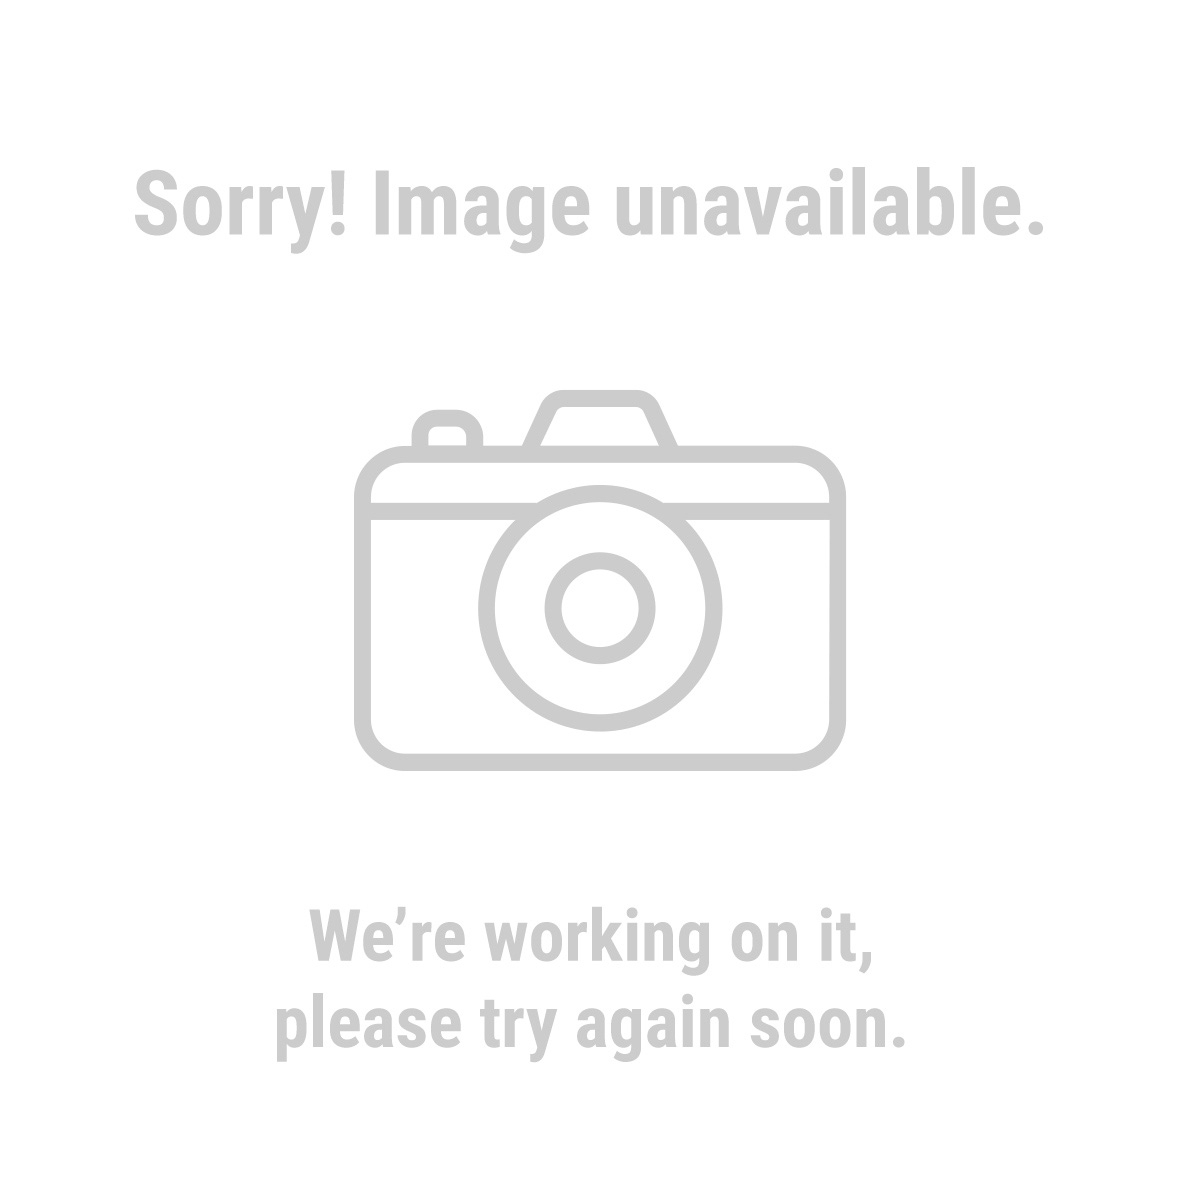 Chicago Electric Generators 65309 16,000 Watts Max/15,000 Watts Rated Tractor-Driven PTO Generator